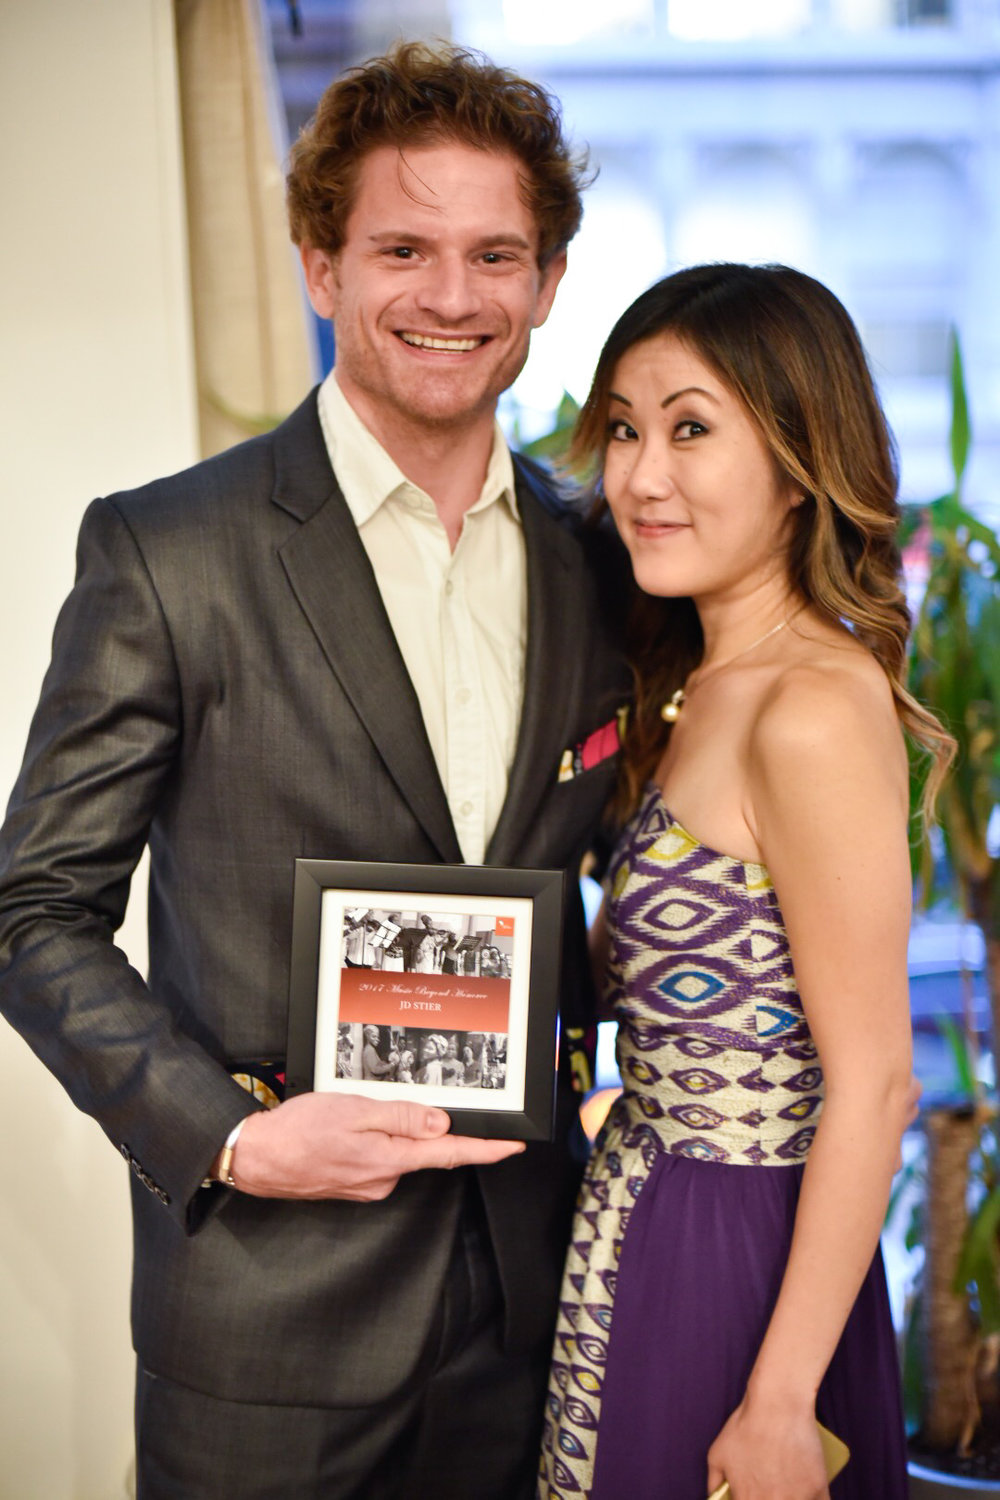 JD Stier and Kaori Fujii at Music Beyond's Third Annual Gala